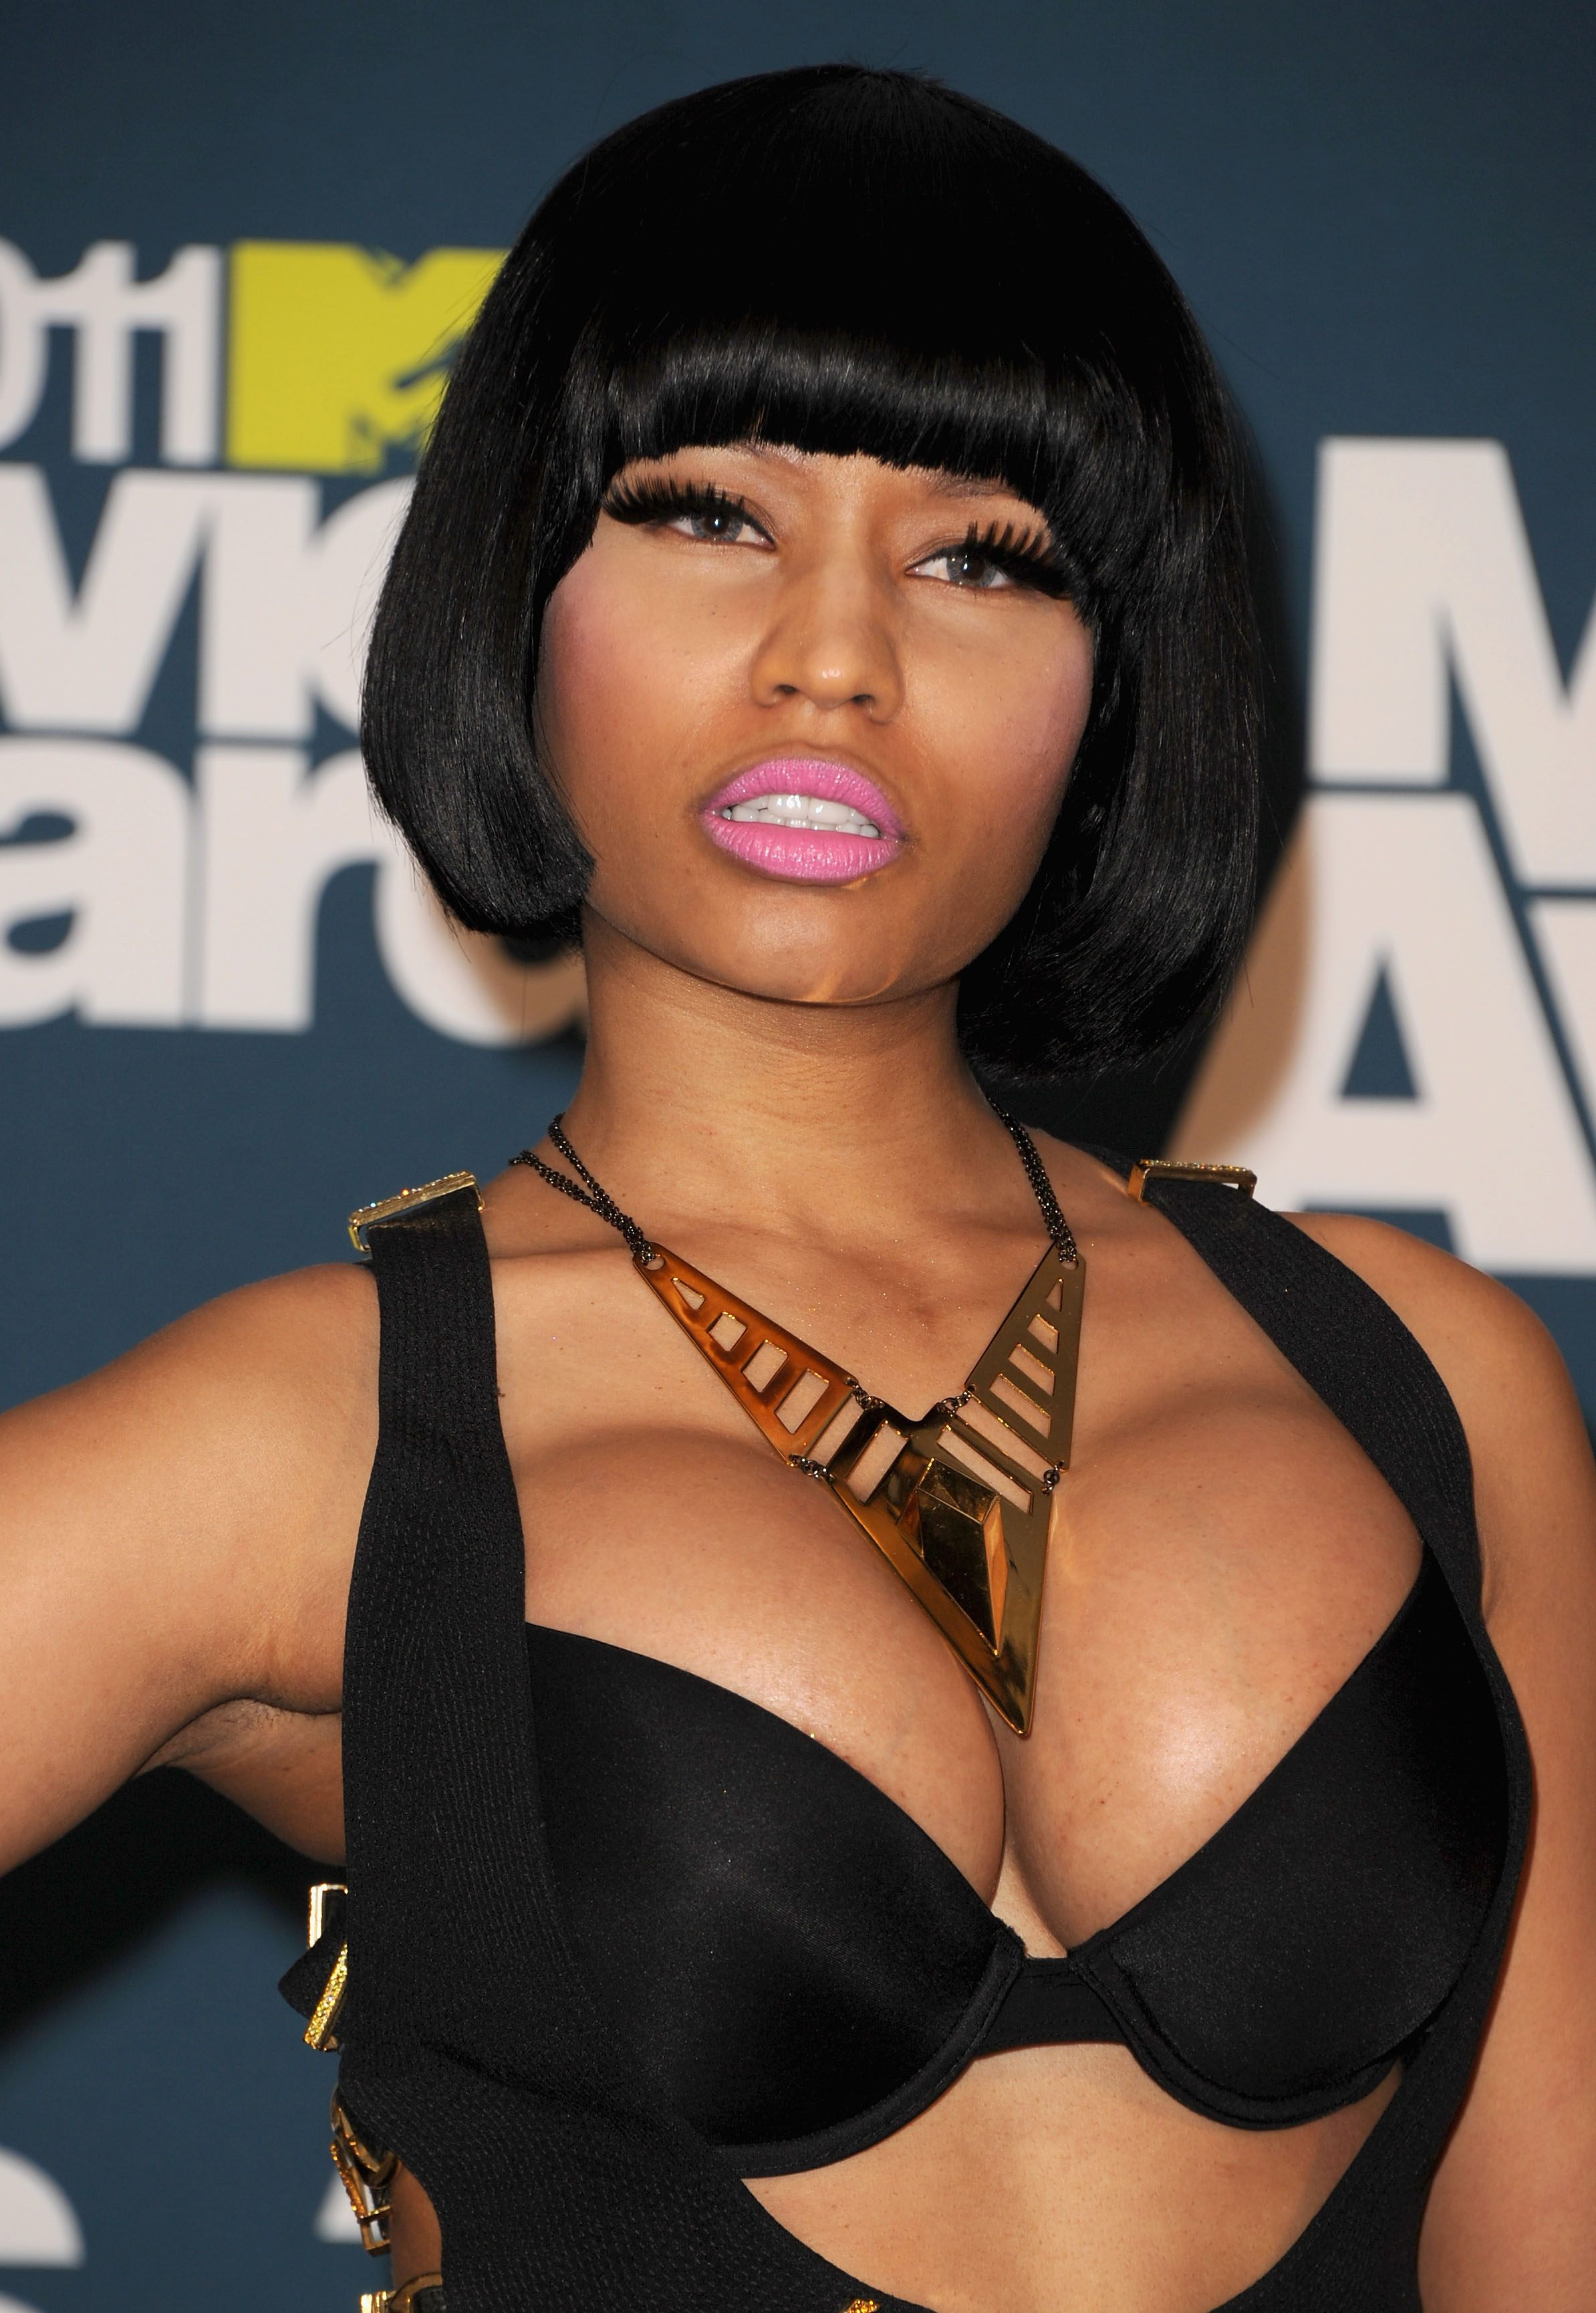 Official: Post your Nicki Minaj cum pictures here